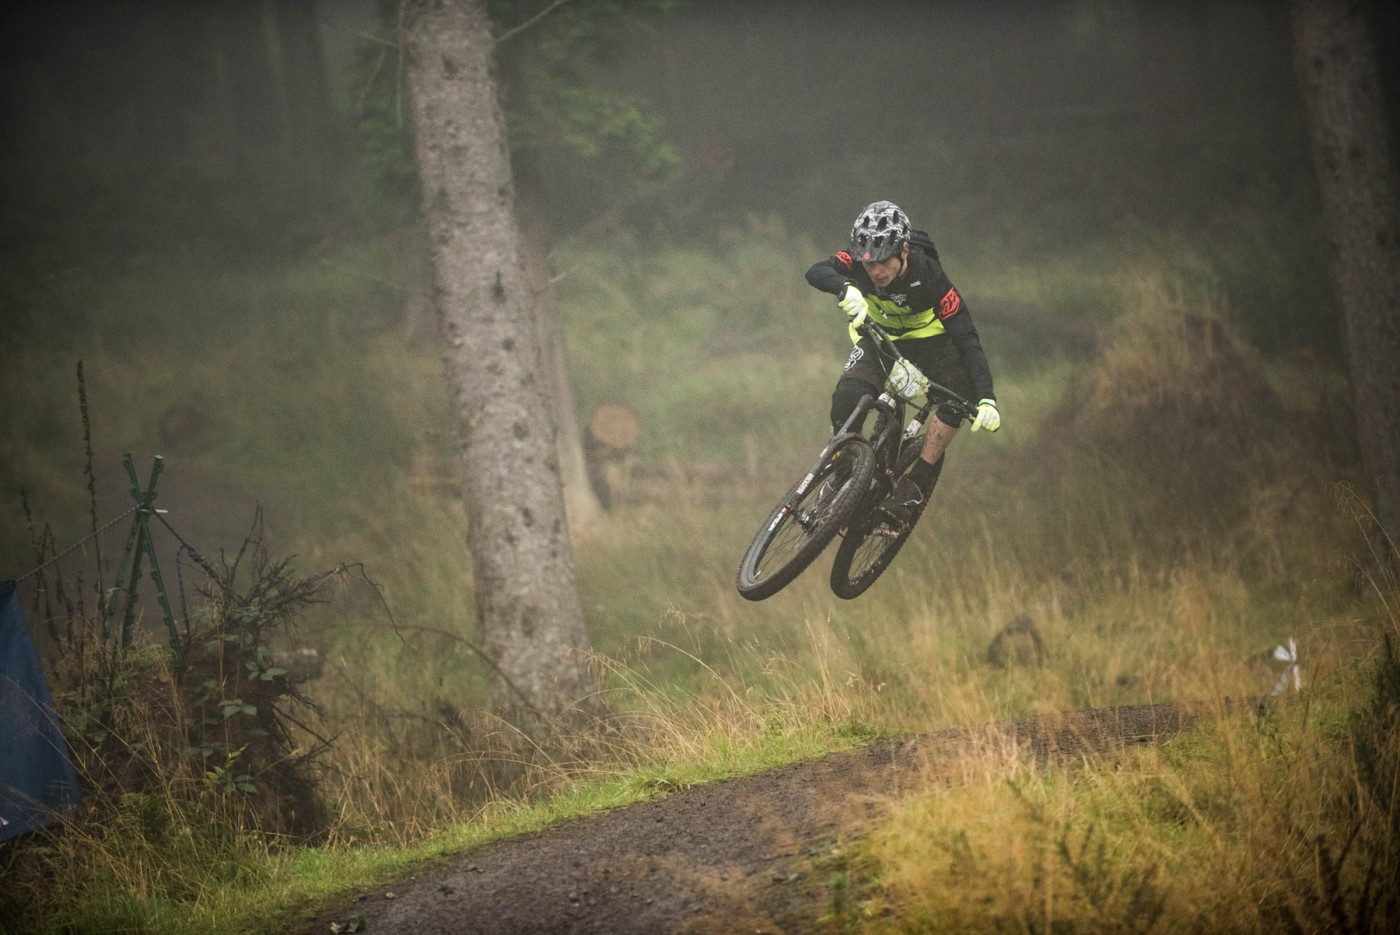 Muckmedden Fair City Enduro Wideopenmag